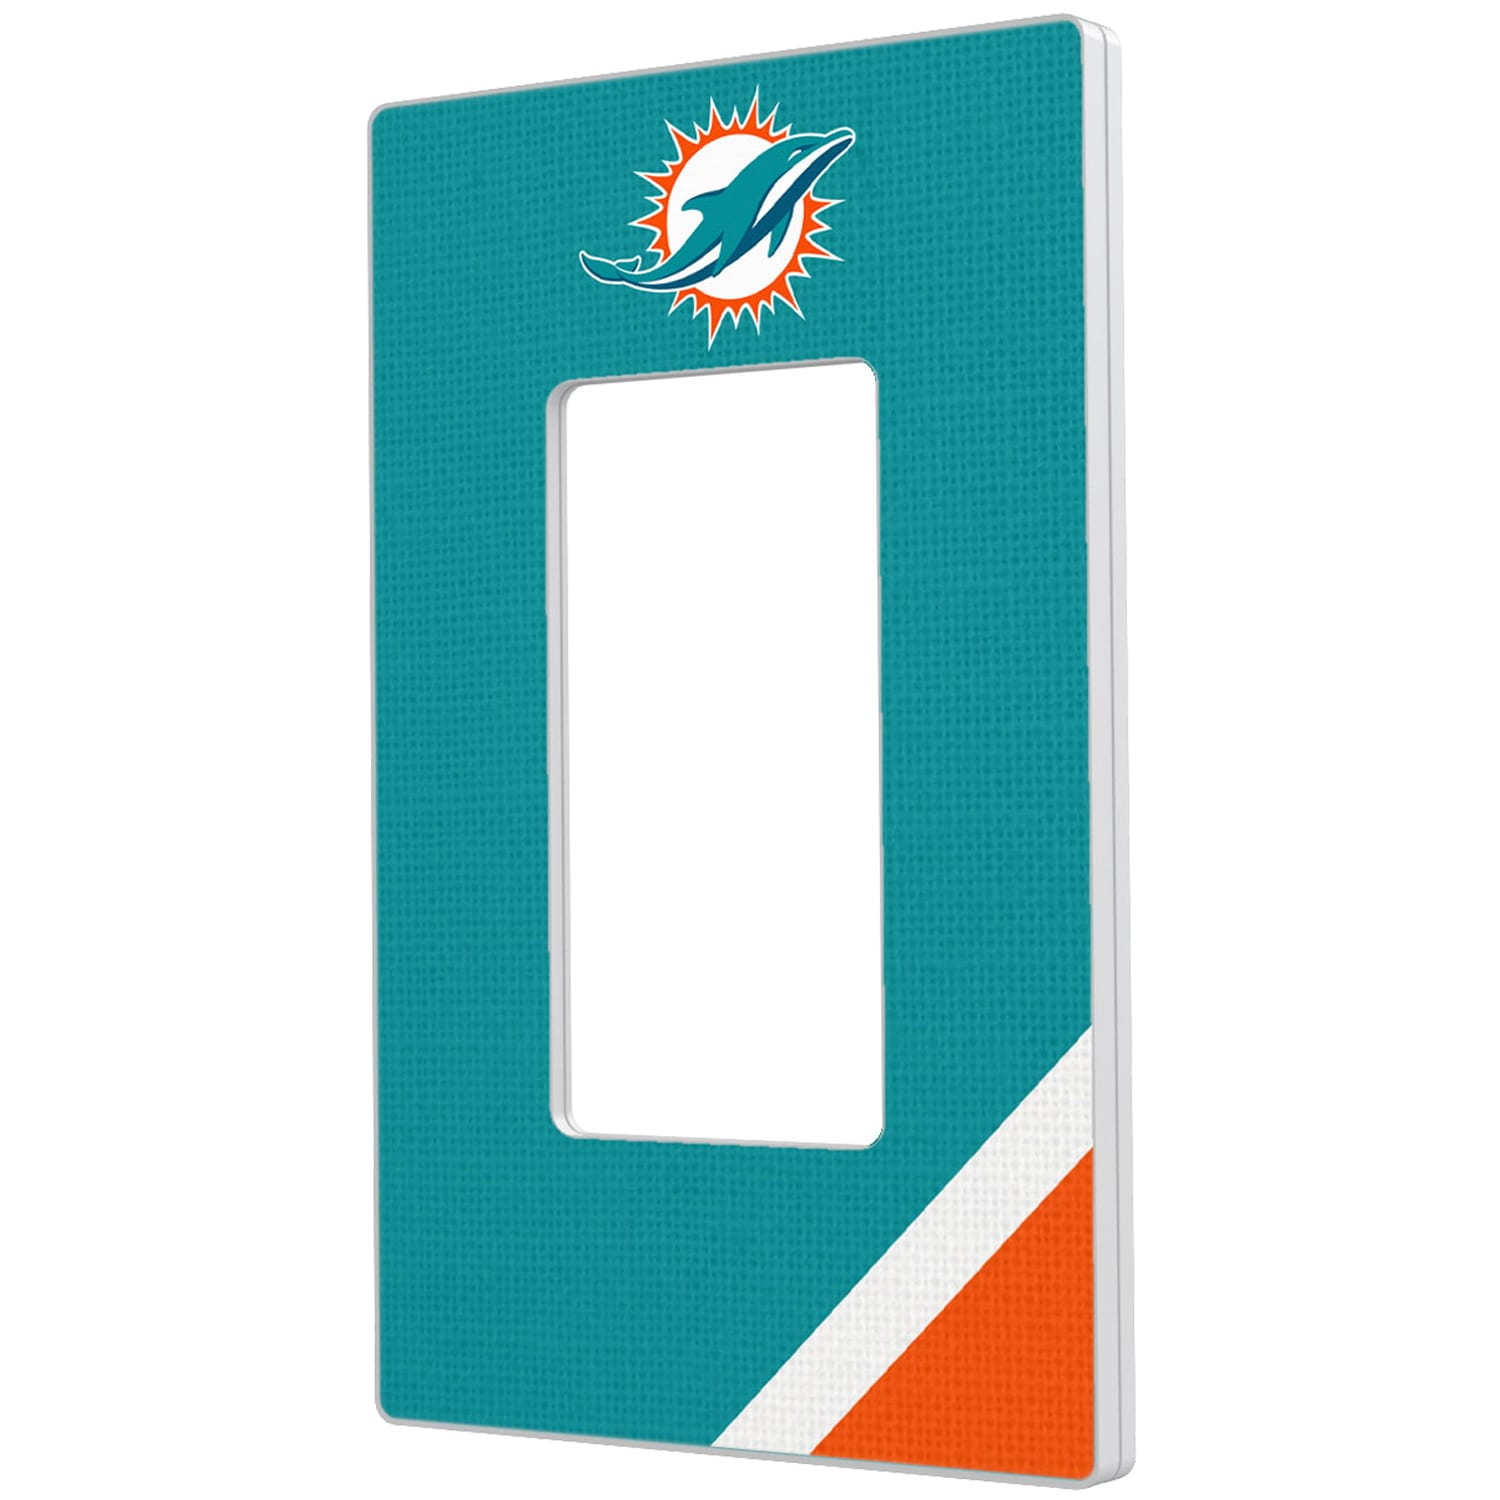 Miami Dolphins Diagonal Stripe Single Rocker Light Switch Plate